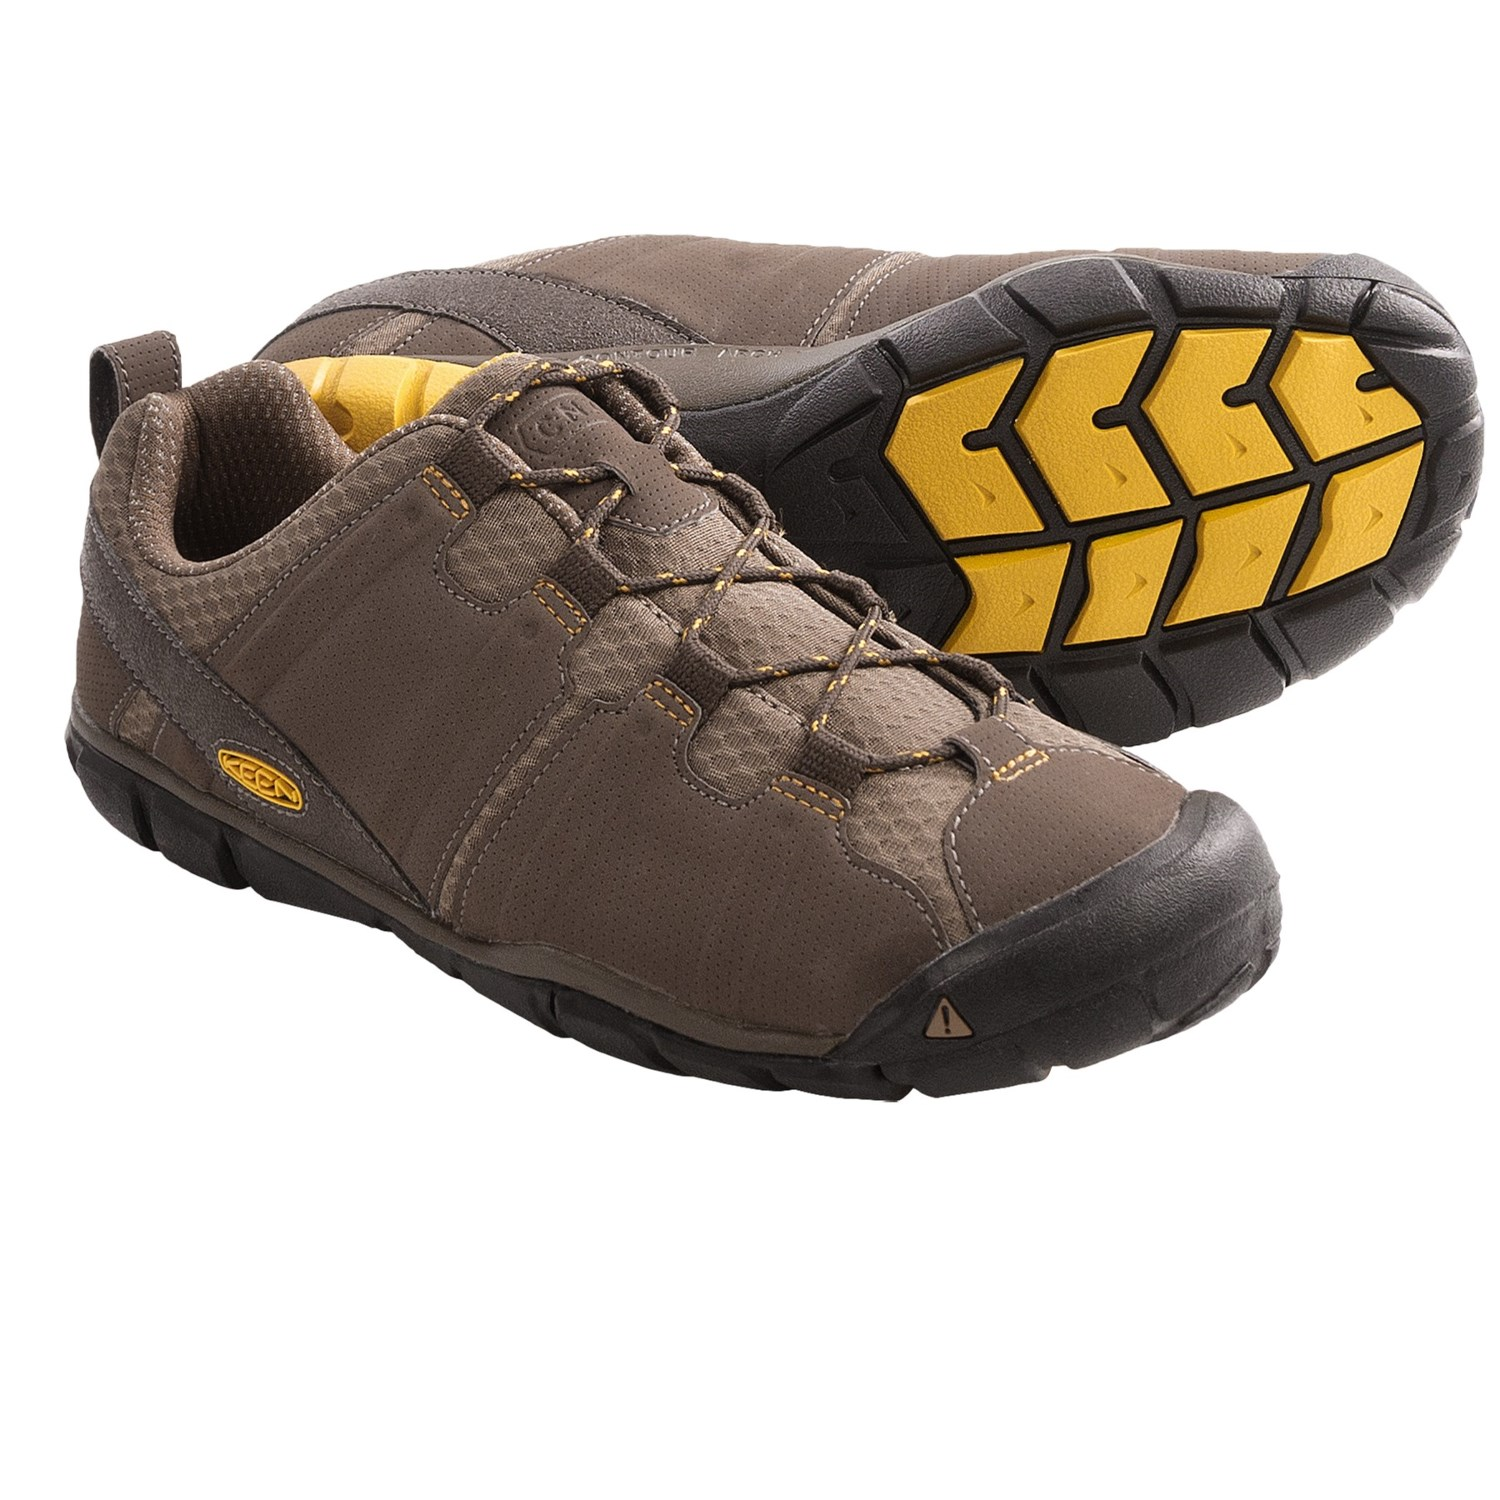 Shoes For Commuting To Work Men